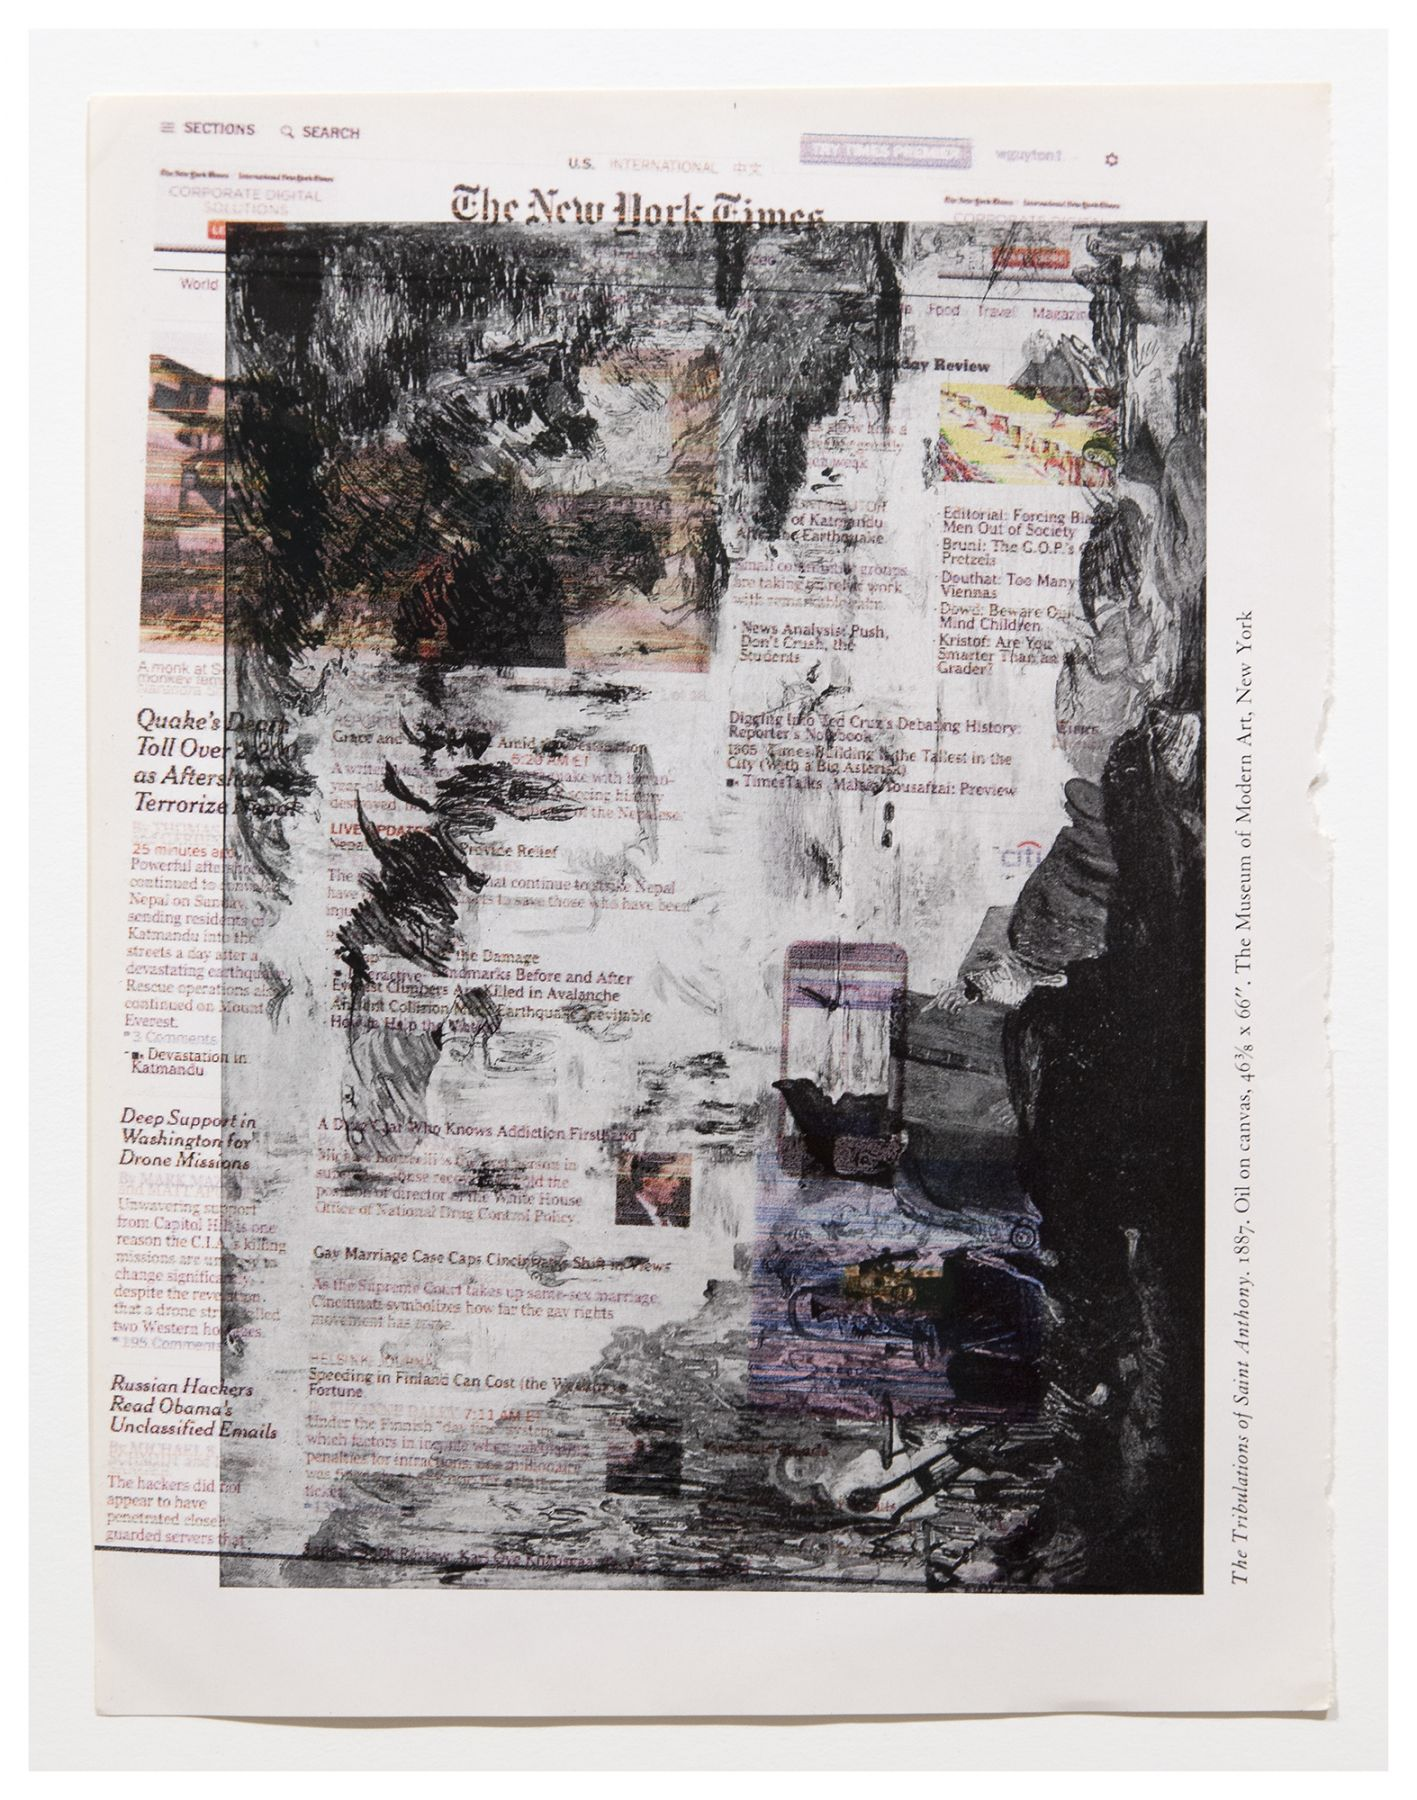 Wade Guyton Untitled (The Tribulations of St. Anthony), 2015 Epson DURABrite inkjet on book page Paper: 10 1/2 x 8 1/2 inches (26.7 x 21.6 cm) Frame: 17 1/2 x 16 inches (44.5 x 40.6 cm)